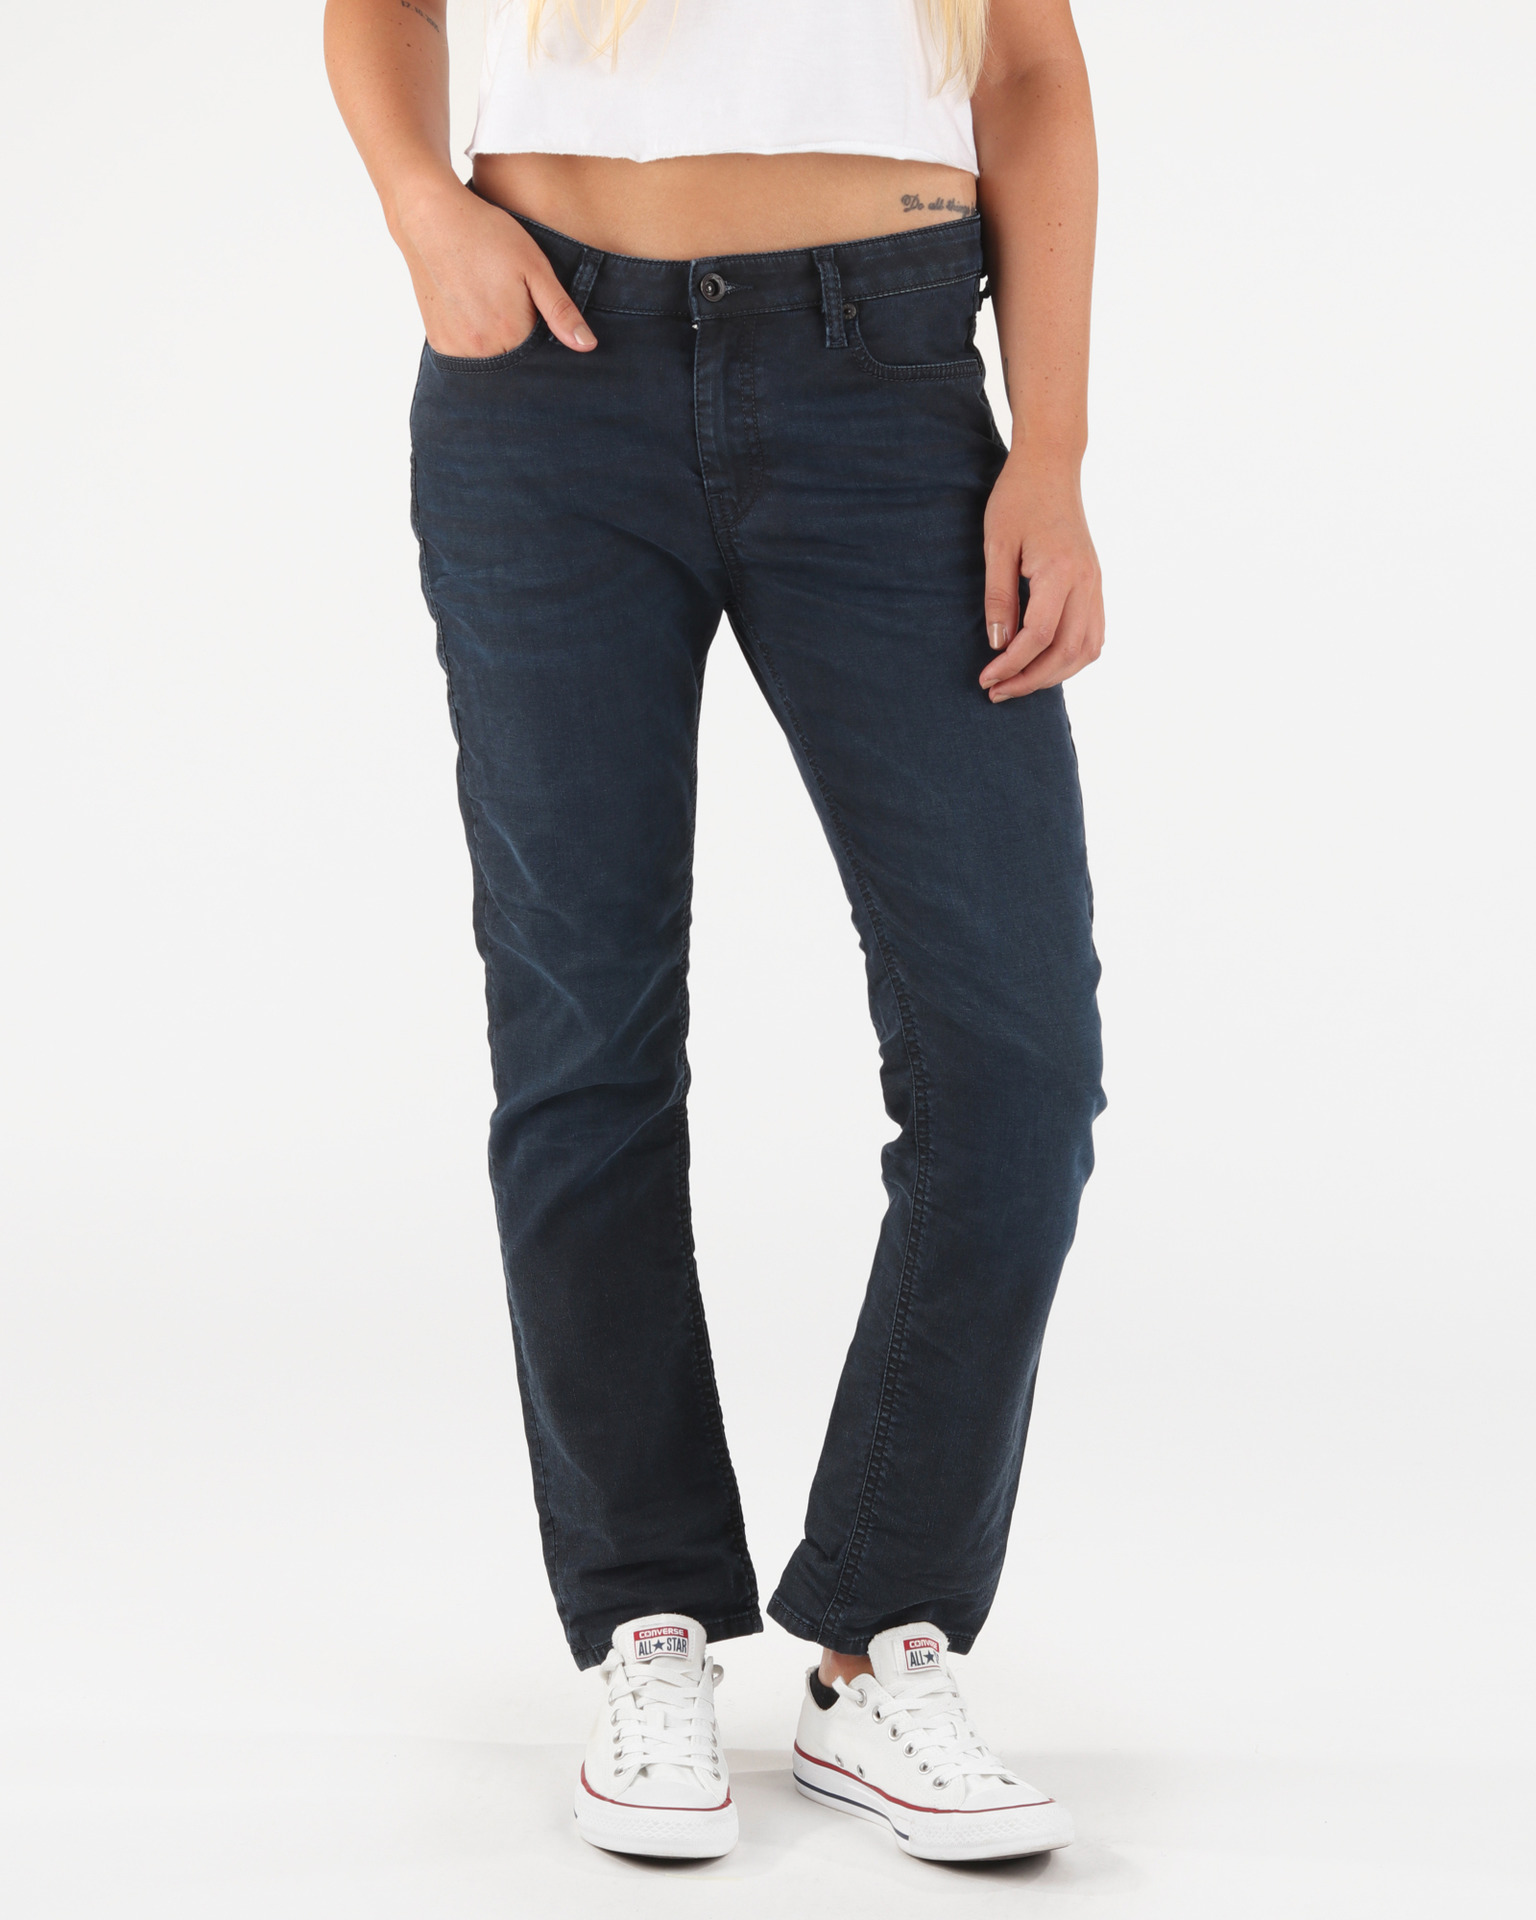 RizzoNe Jeans Diesel